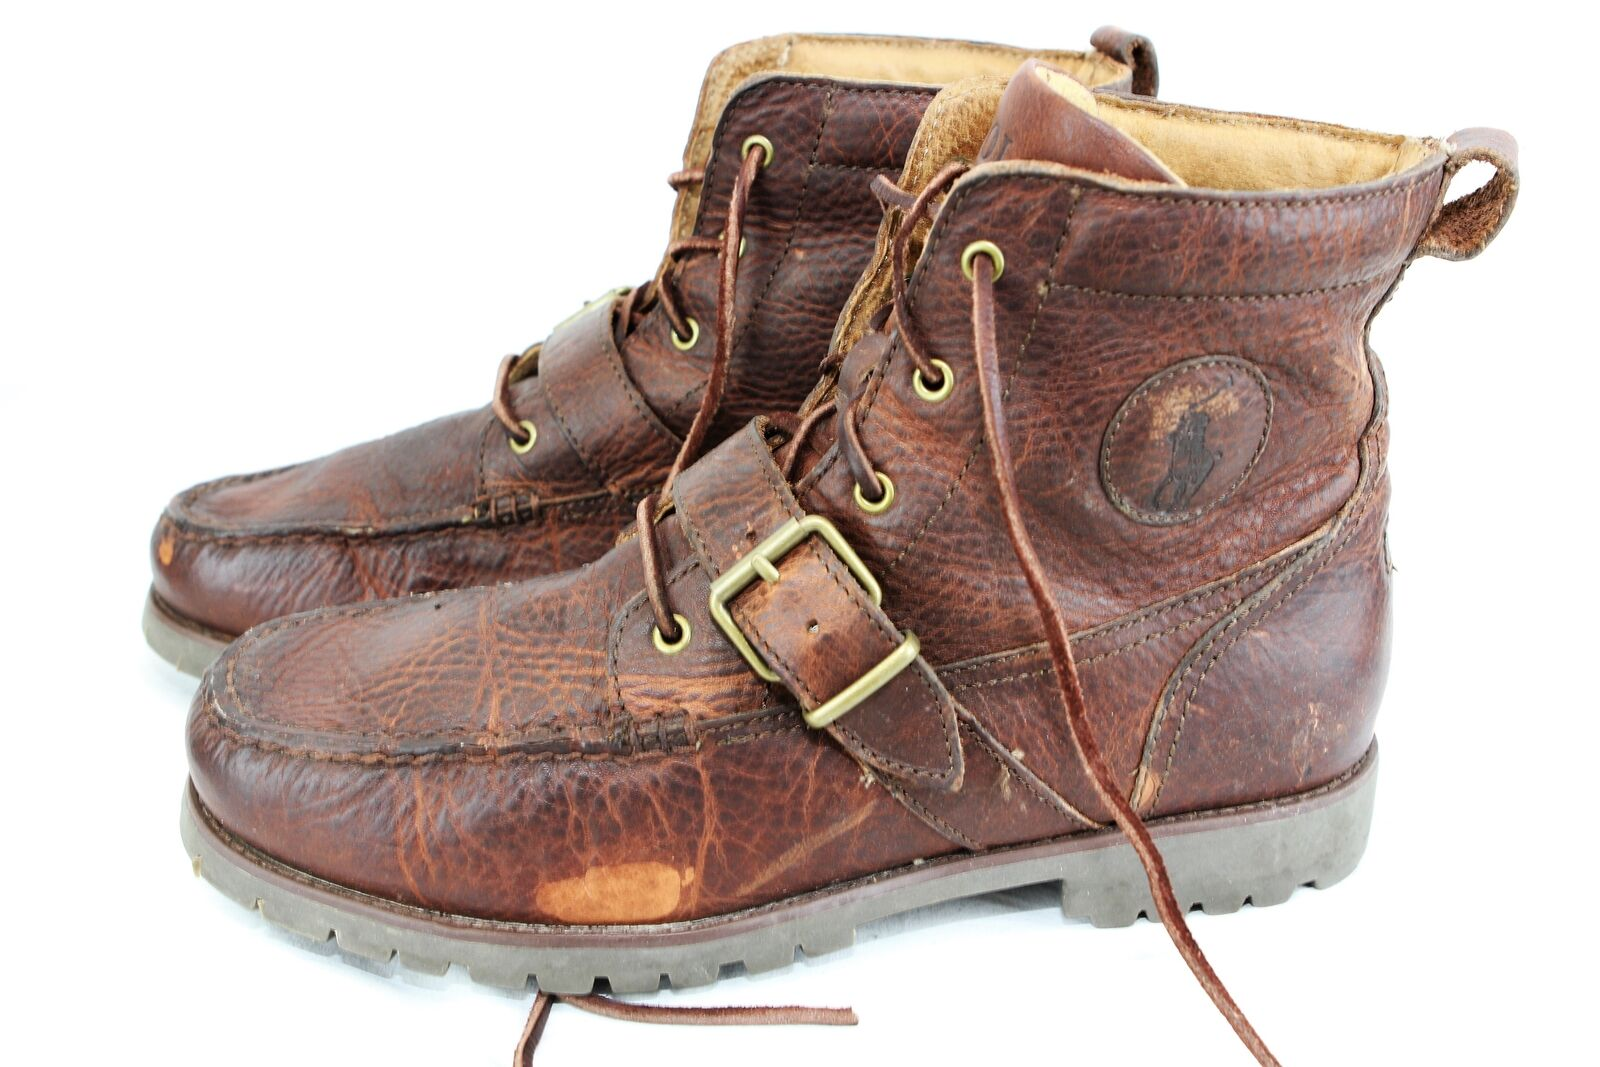 POLO Ralph Lauren Redmond BOOT Brown US 10.5D  Eur 44 420